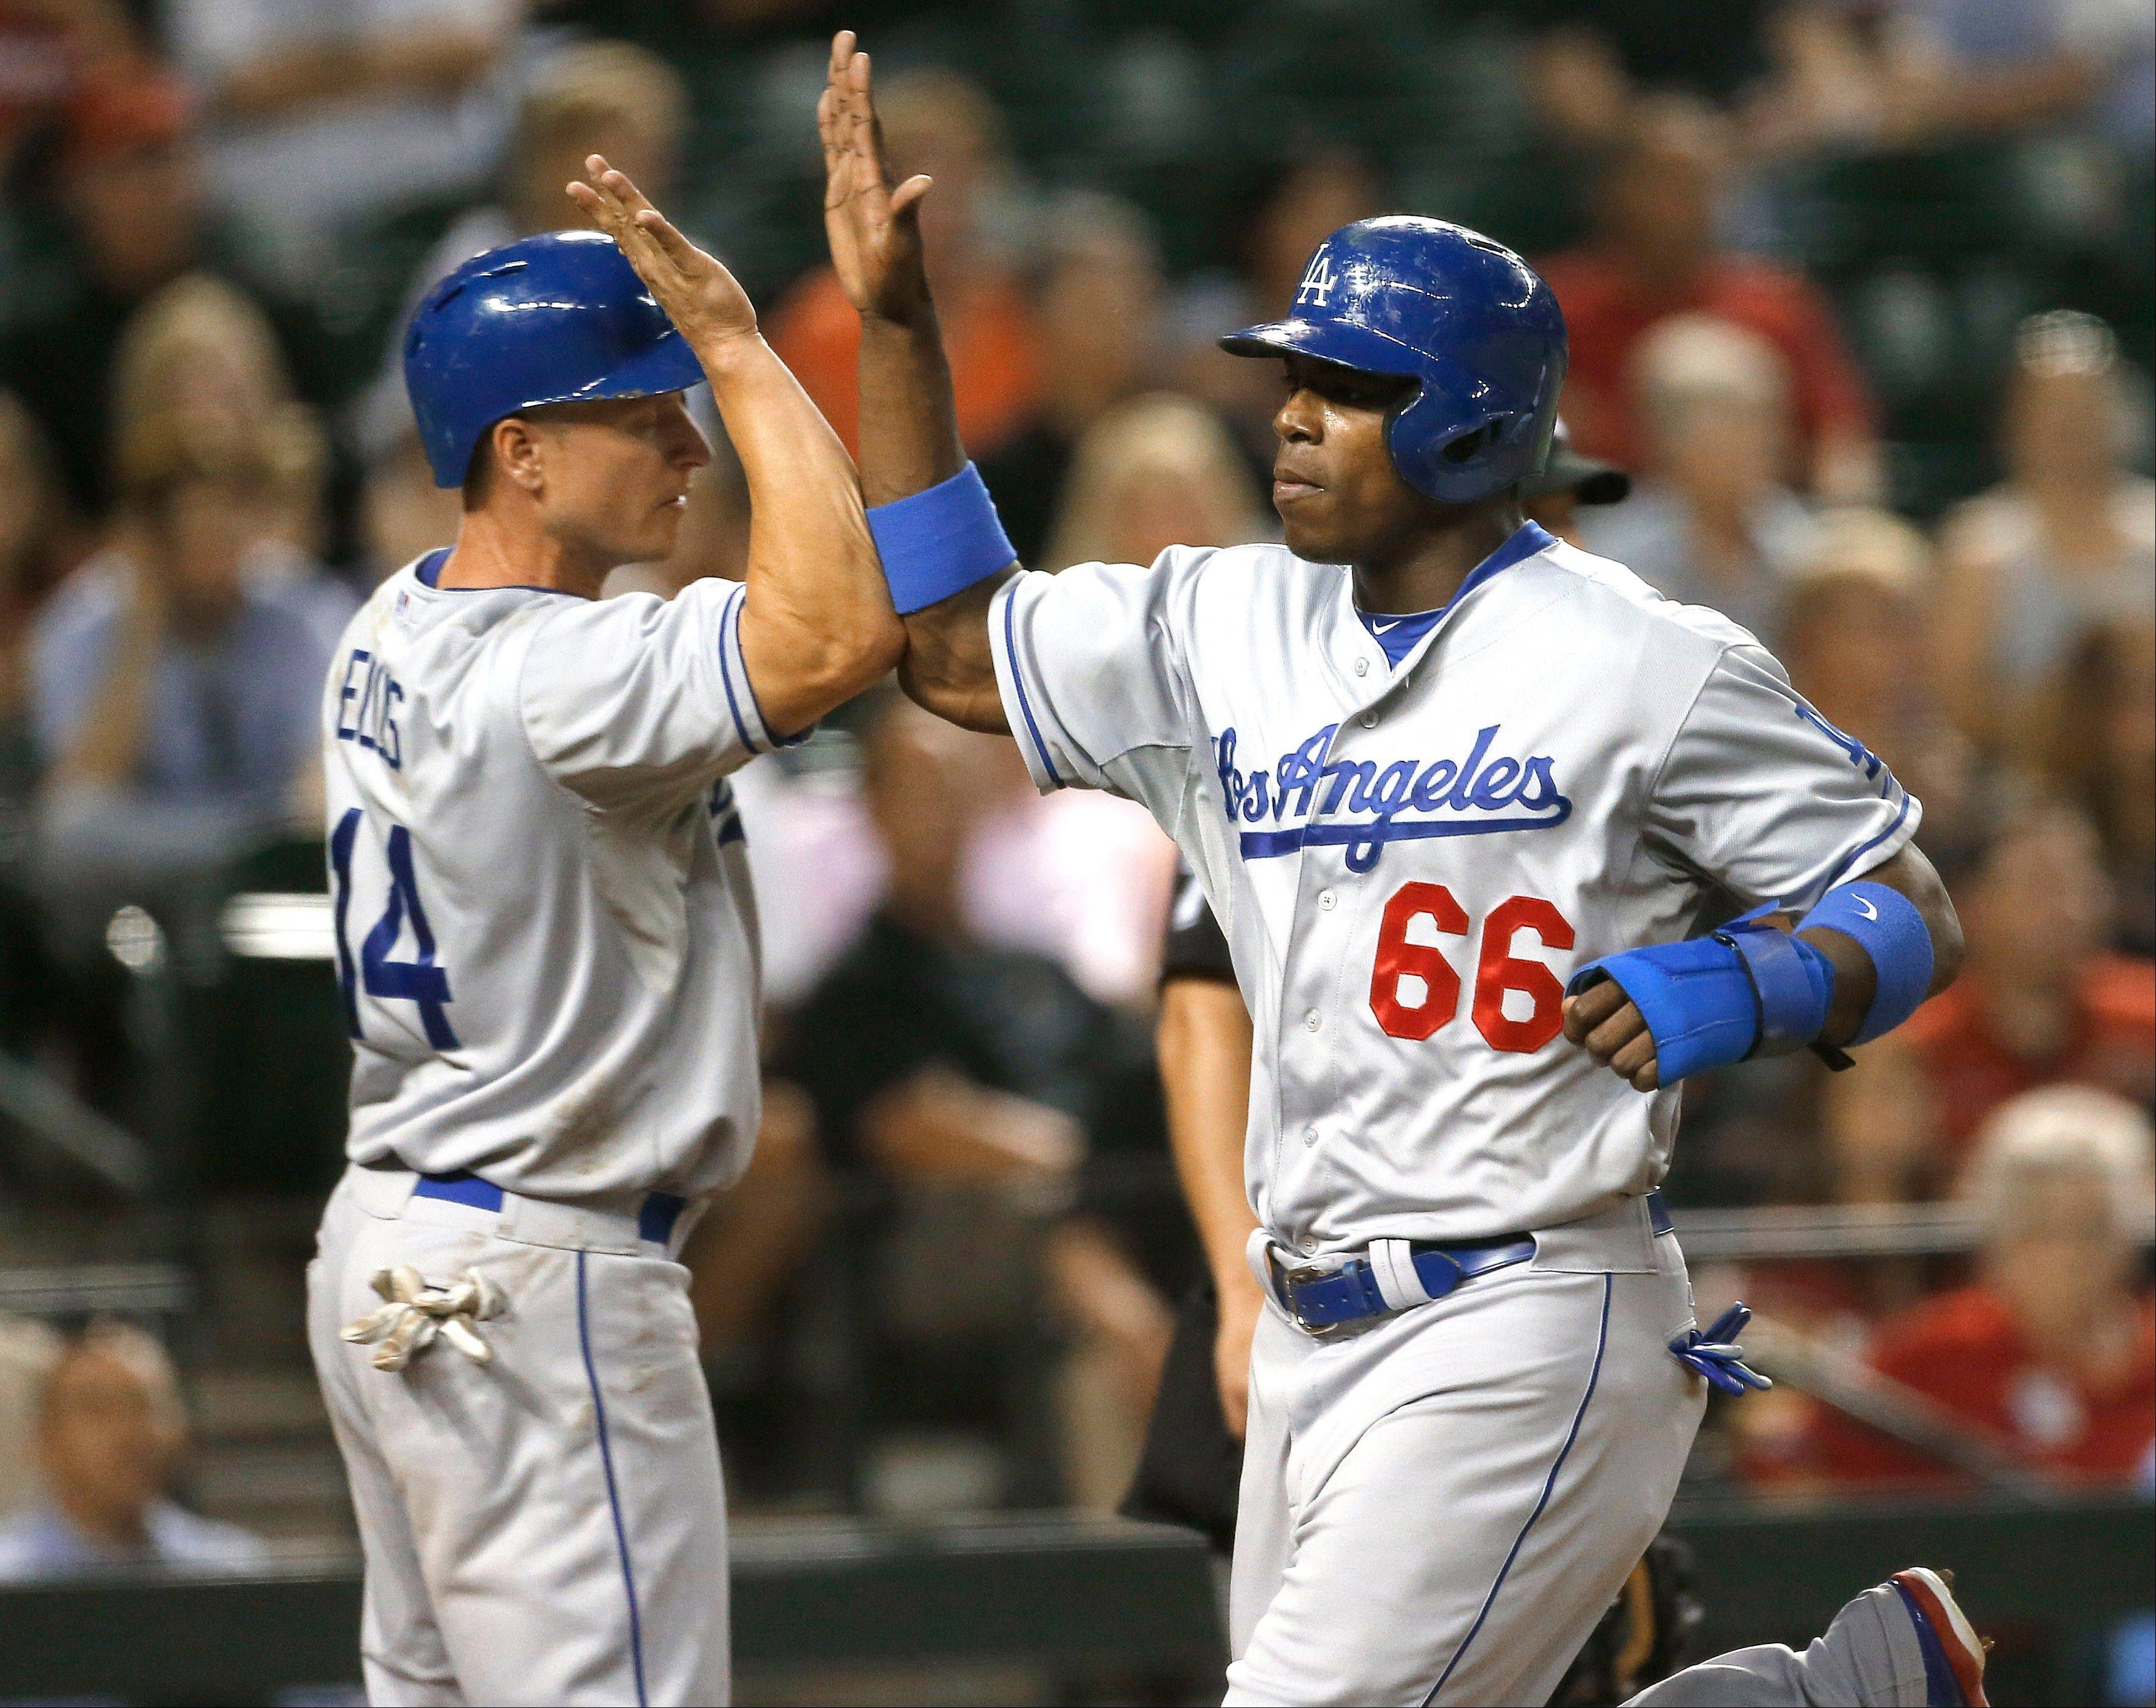 Los Angeles Dodgers' Yasiel Puig (66) and Mark Ellis high-five after scoring on a double by Hanley Ramirez during the fifth inning of a baseball game against the Arizona Diamondbacks, Wednesday, July 10, 2013, in Phoenix.